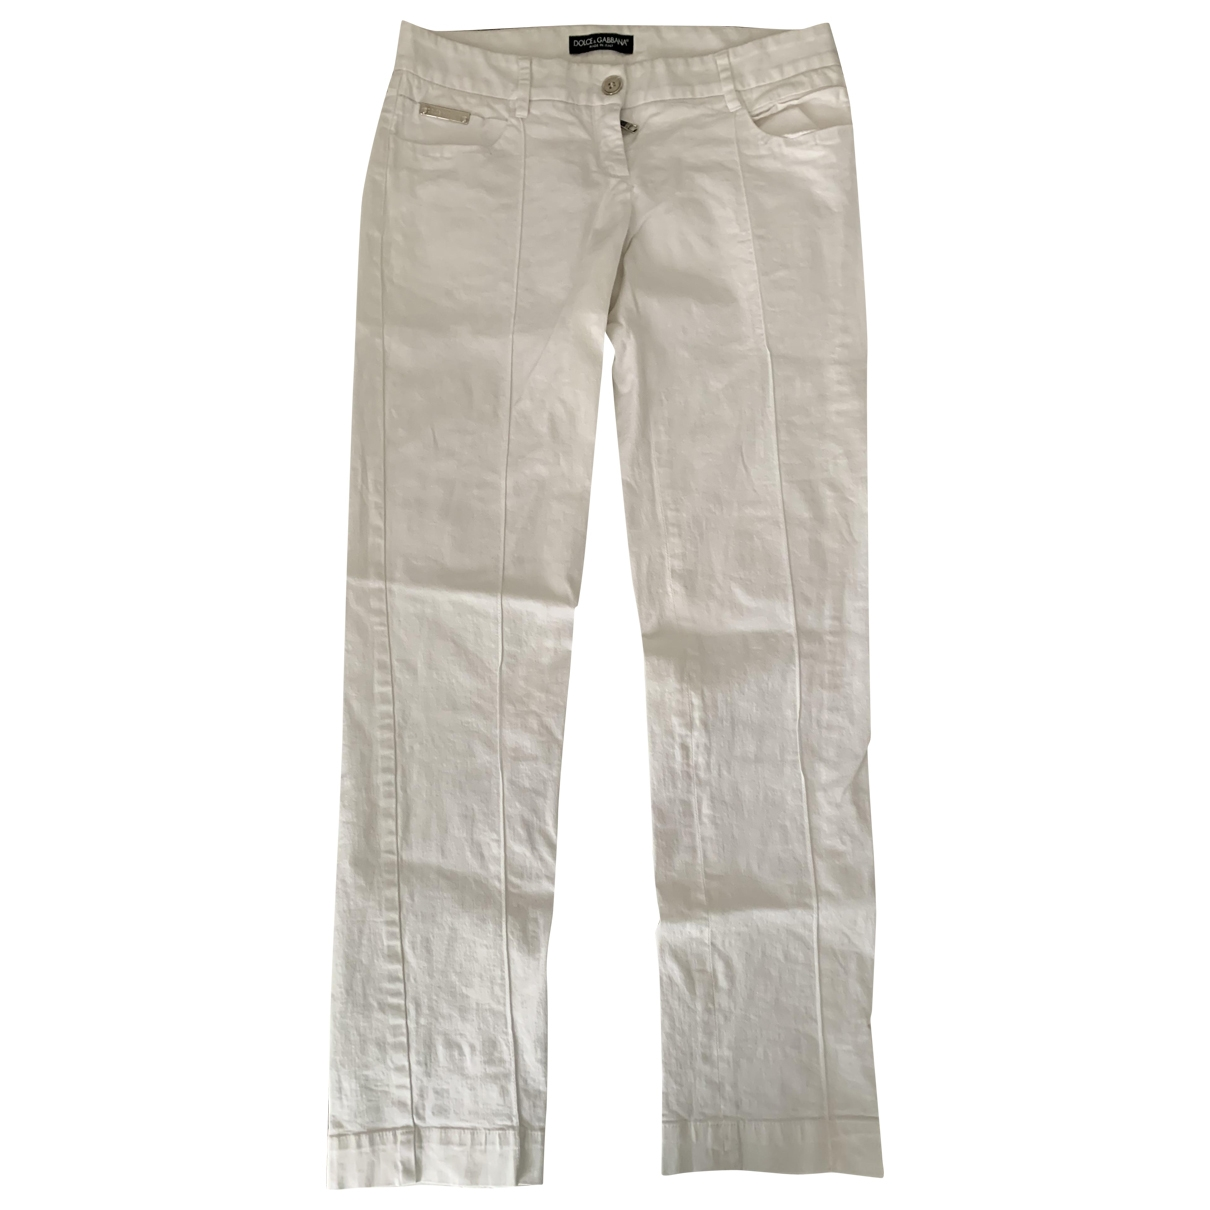 Dolce & Gabbana \N White Denim - Jeans Jeans for Women 38 FR